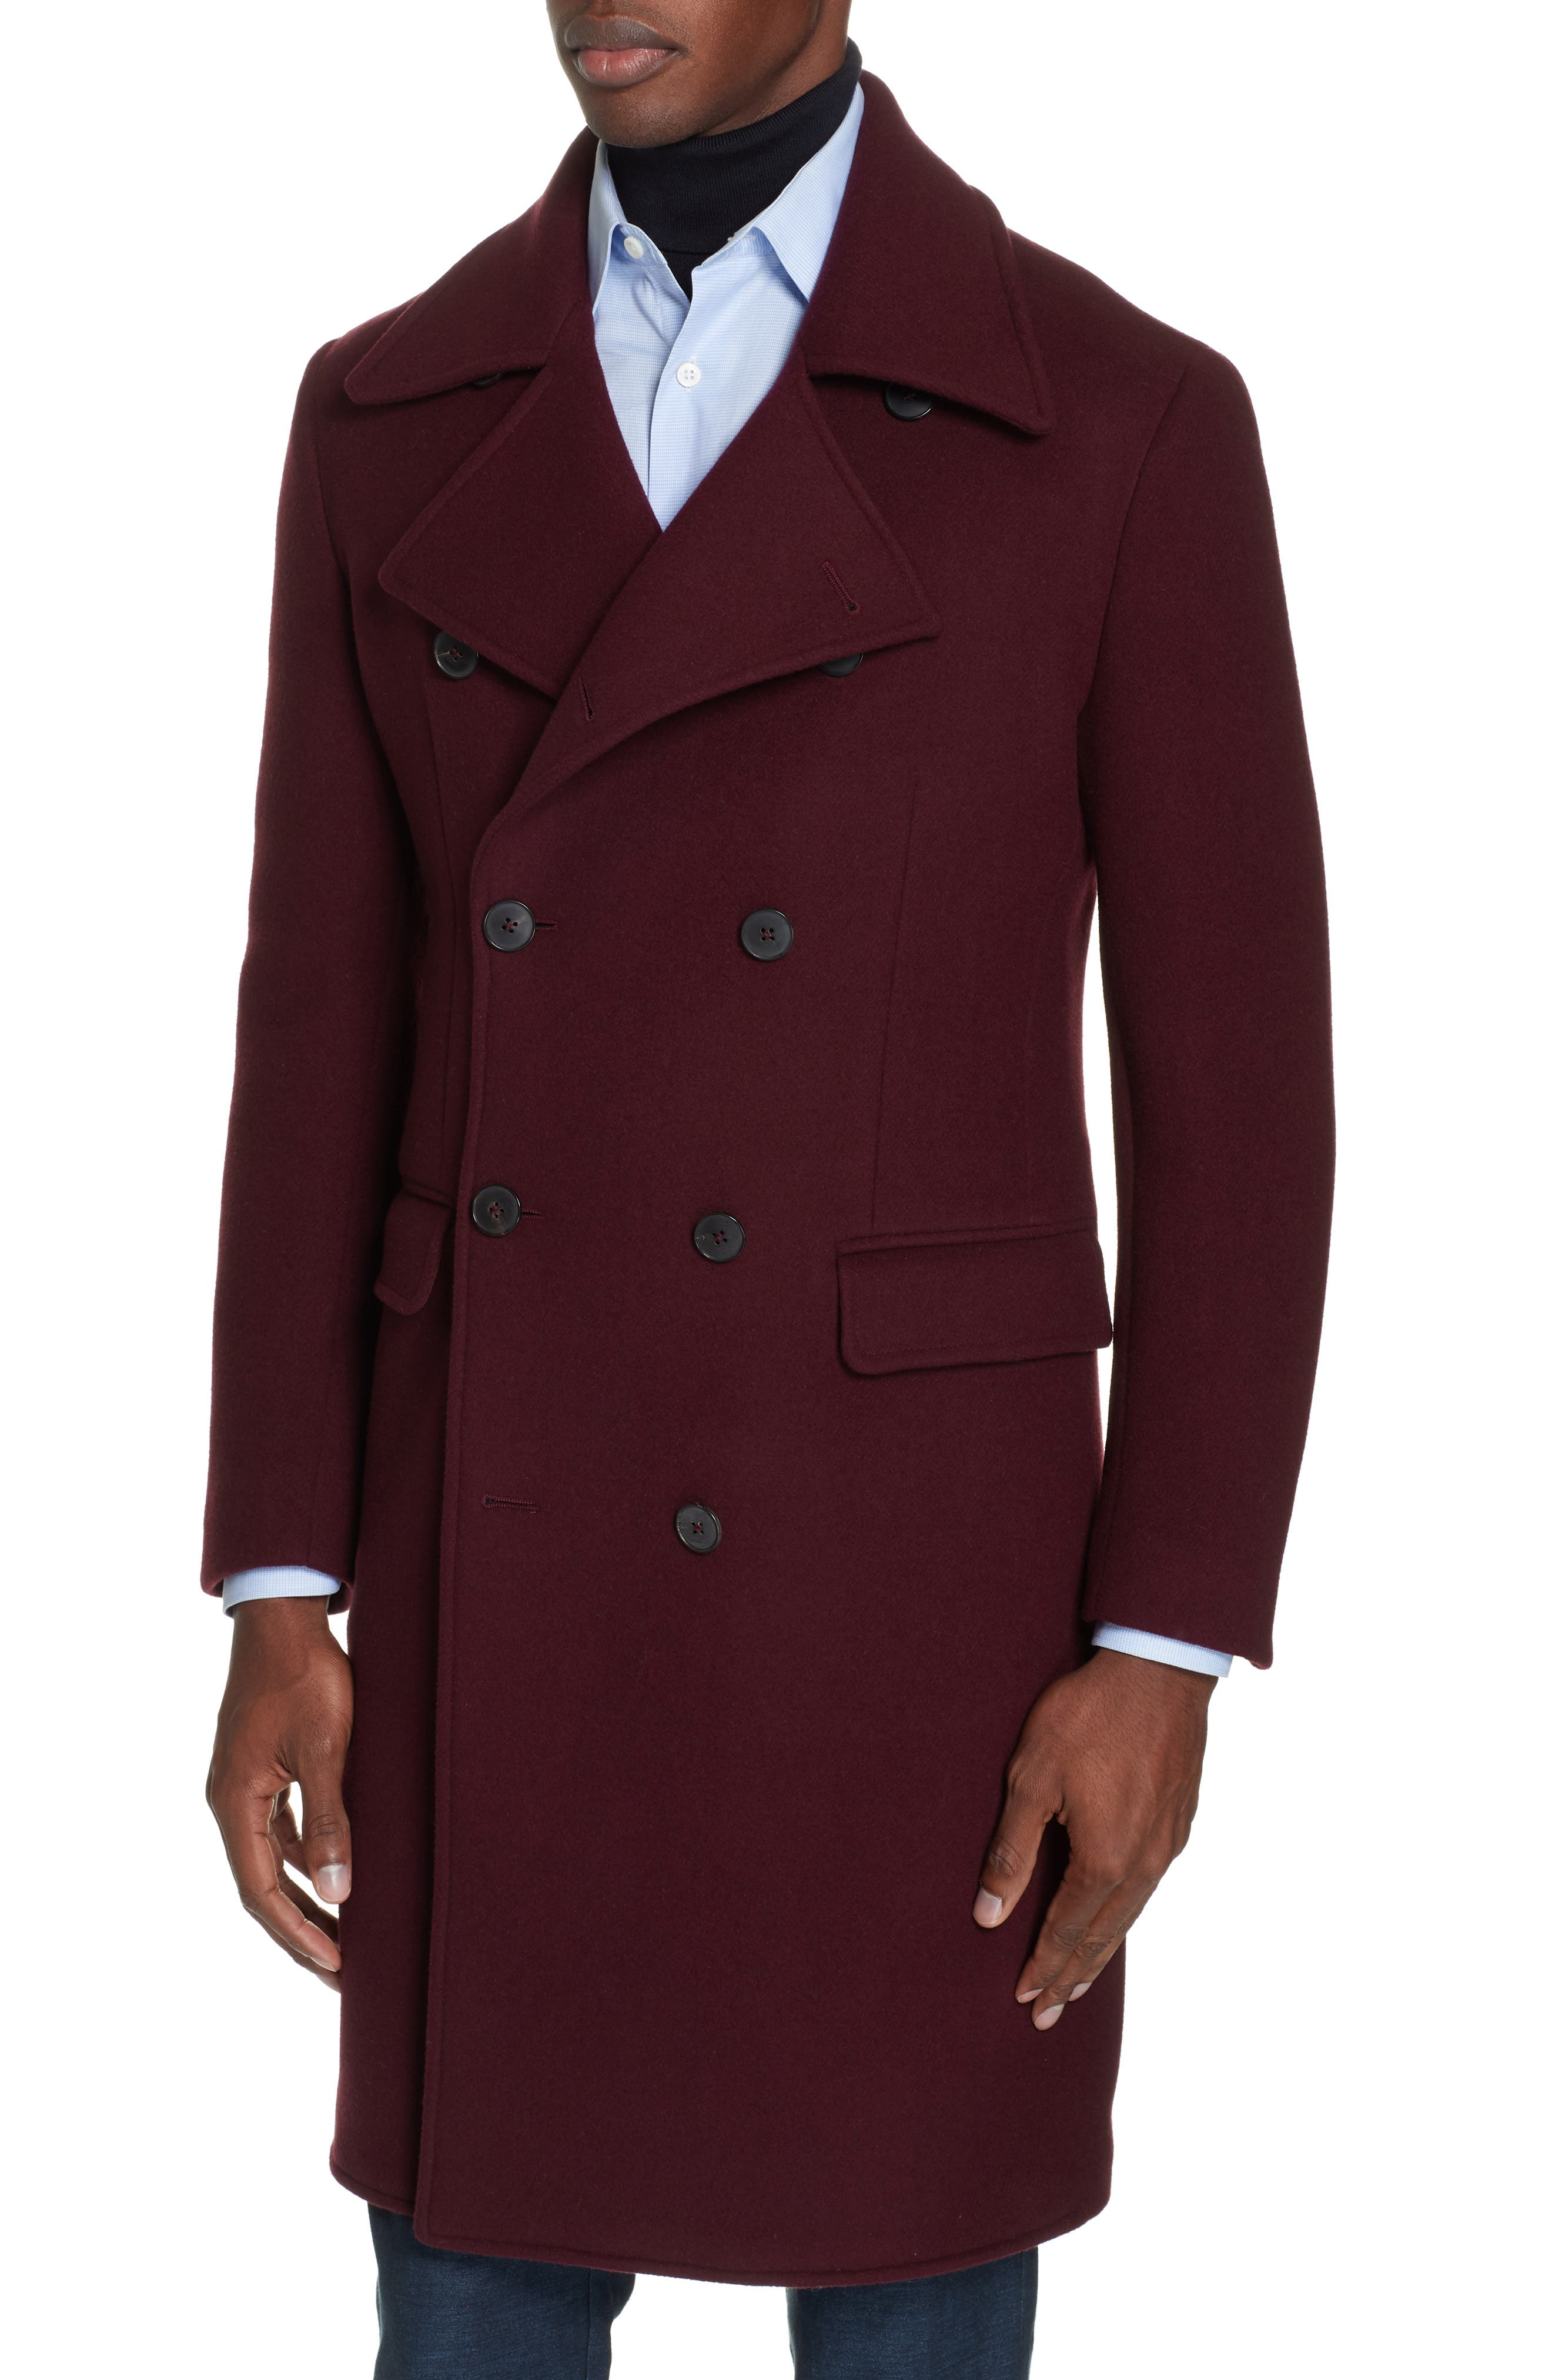 Double Breasted Wool & Cashmere Overcoat,                             Alternate thumbnail 4, color,                             930